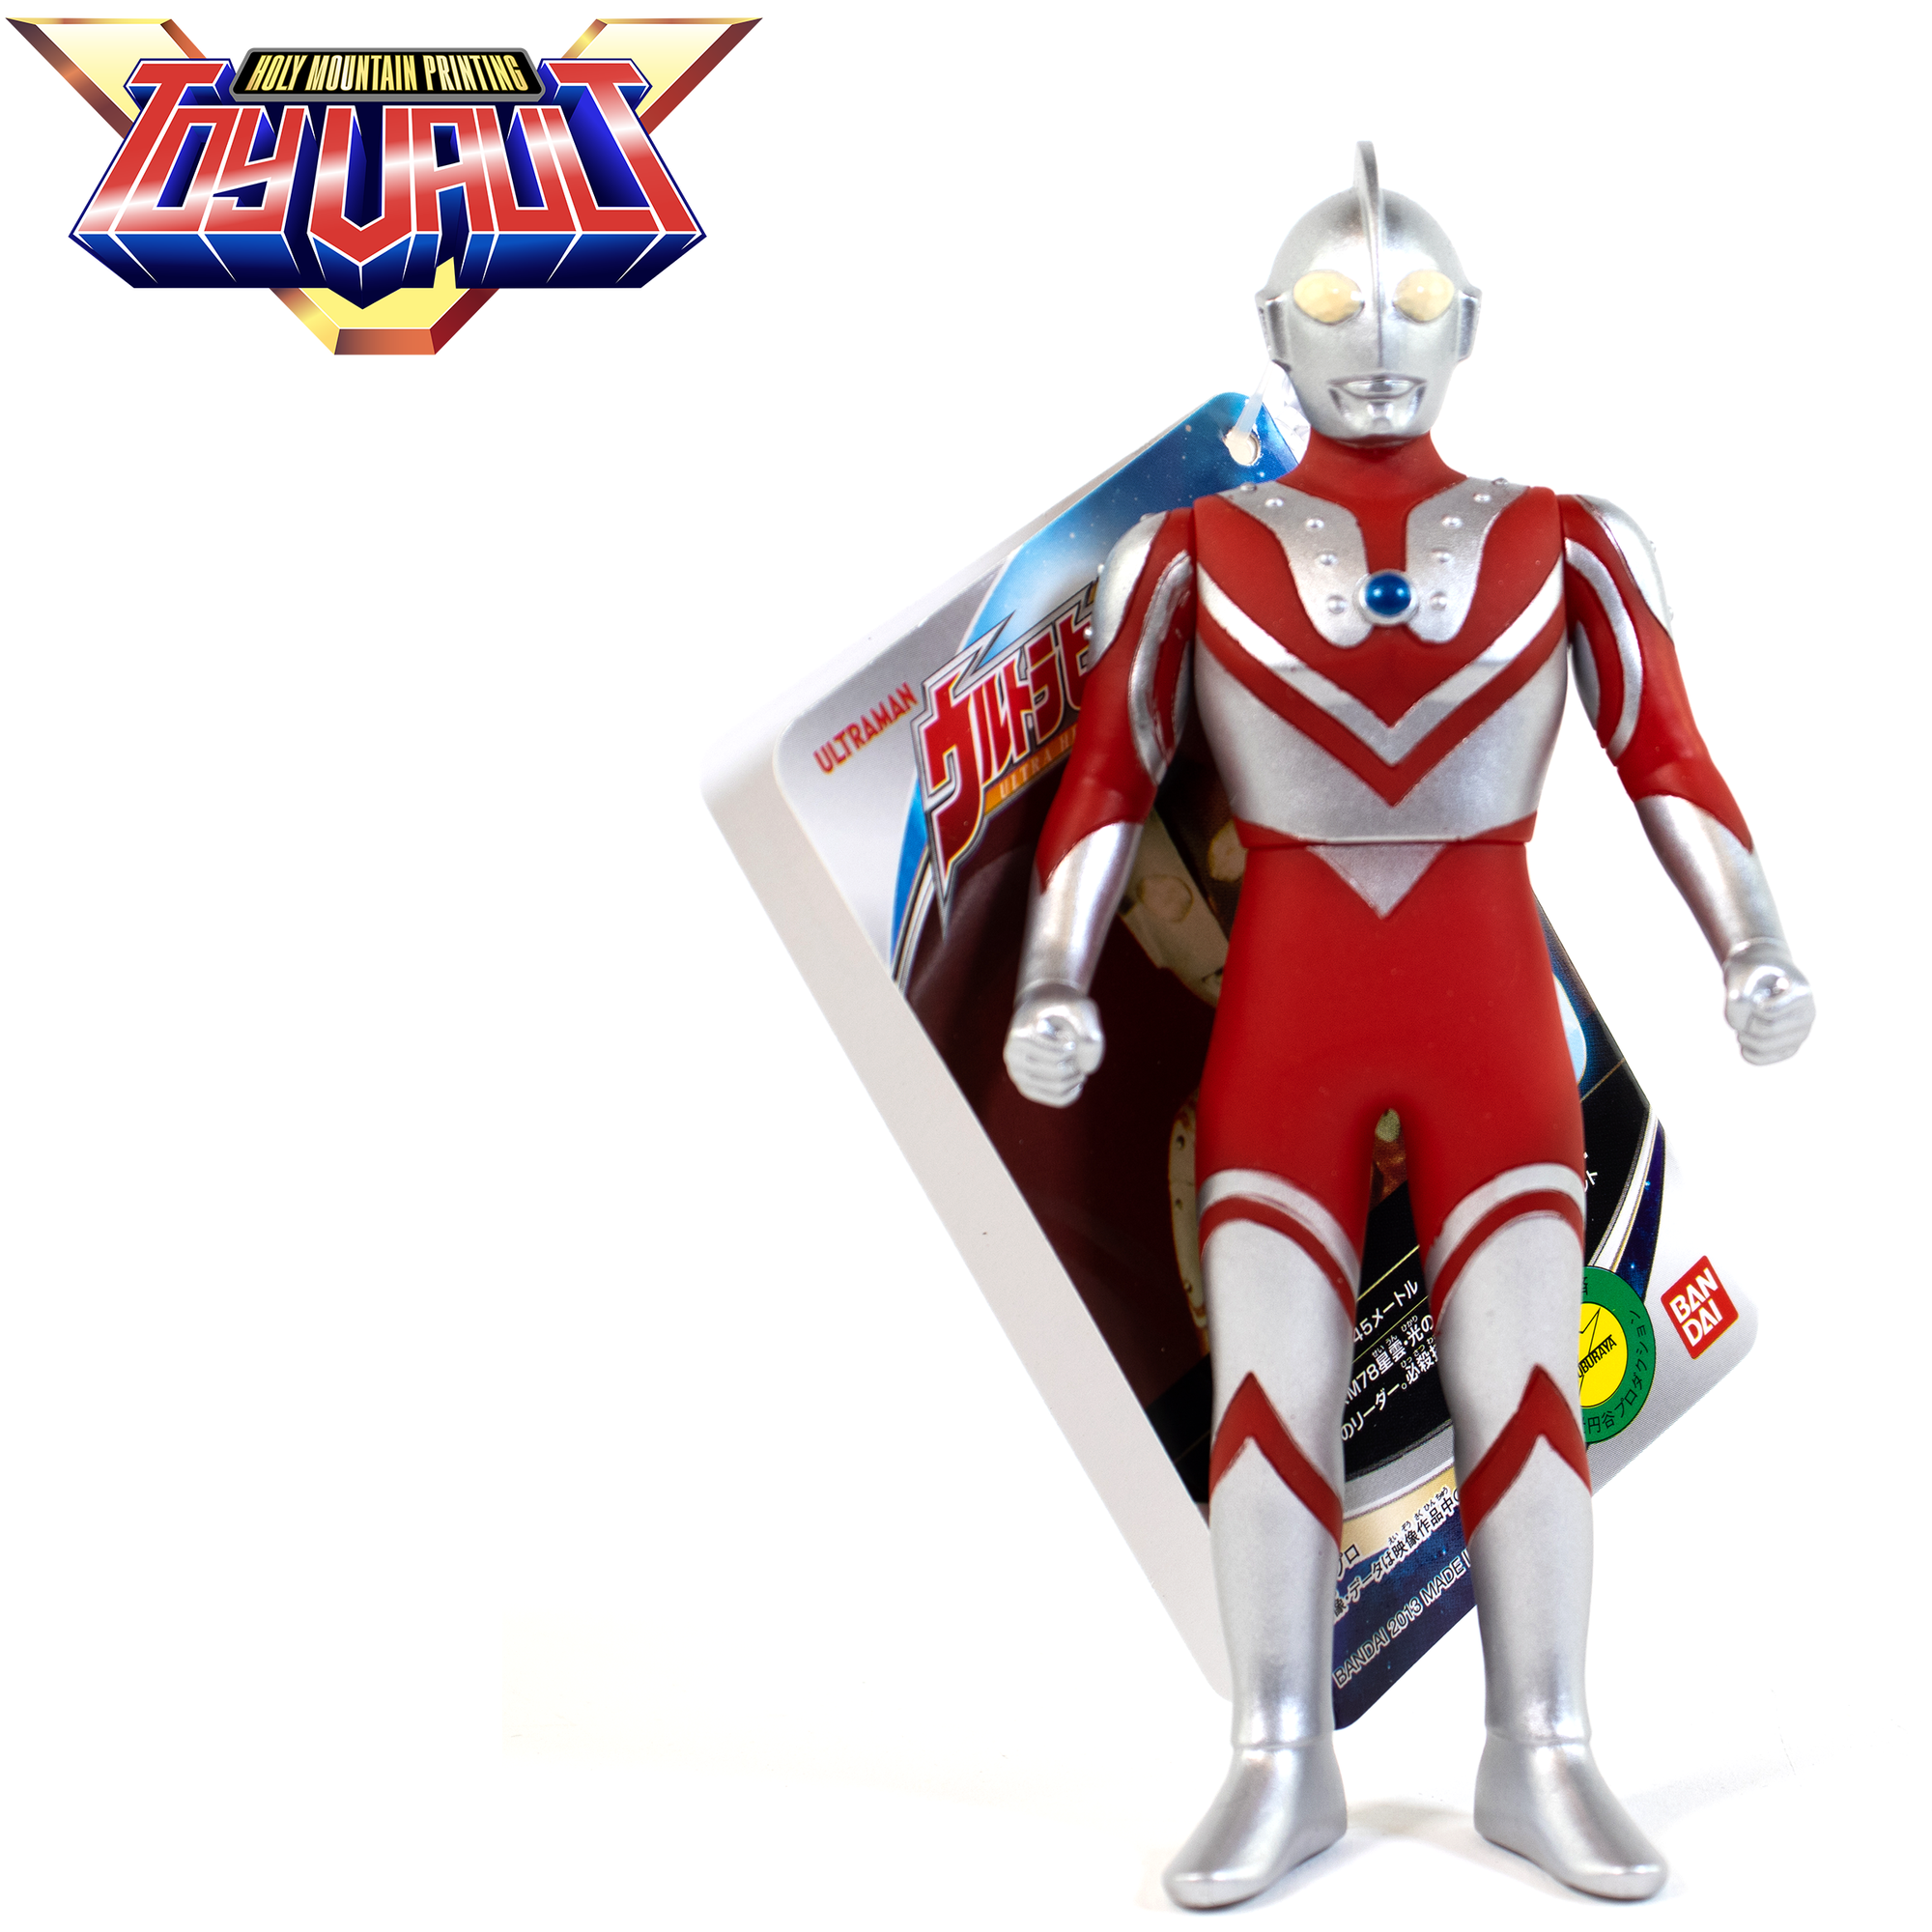 BANDAI - Ultra Hero Series #03: Zoffy